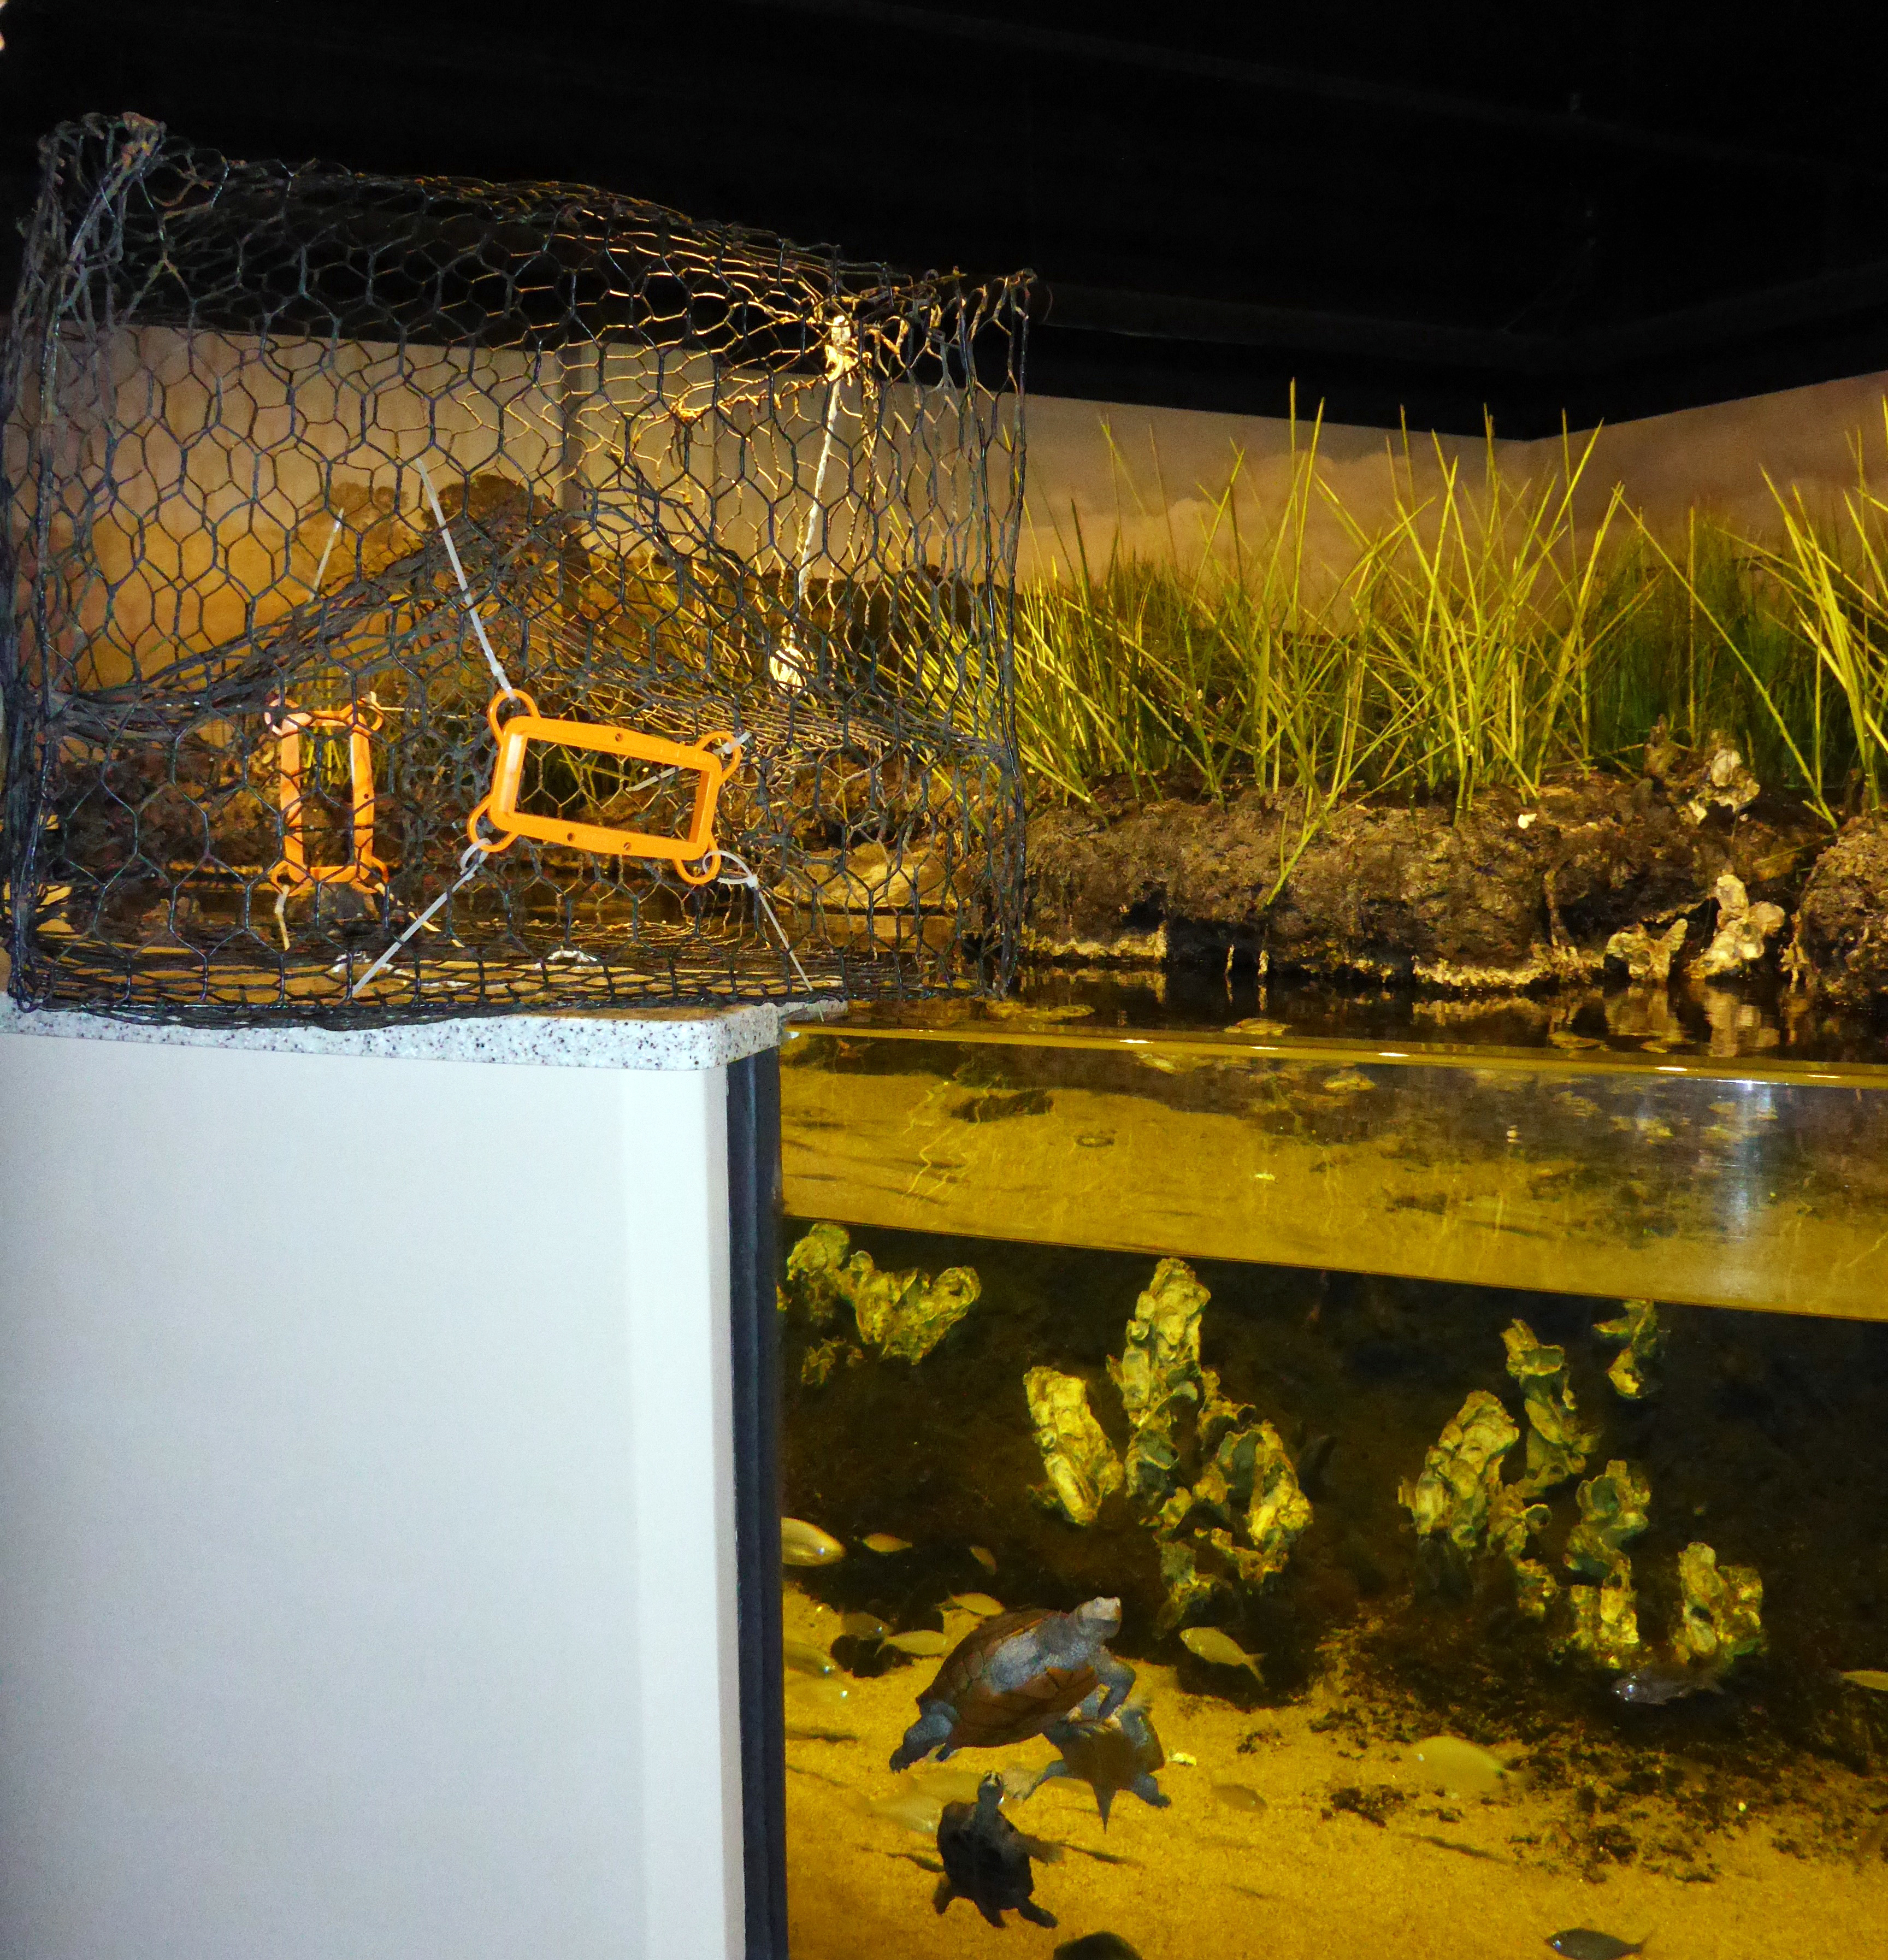 A crab pot fitted with bycatch reduction devices sits above diamondback terrapins at the Aquarium.